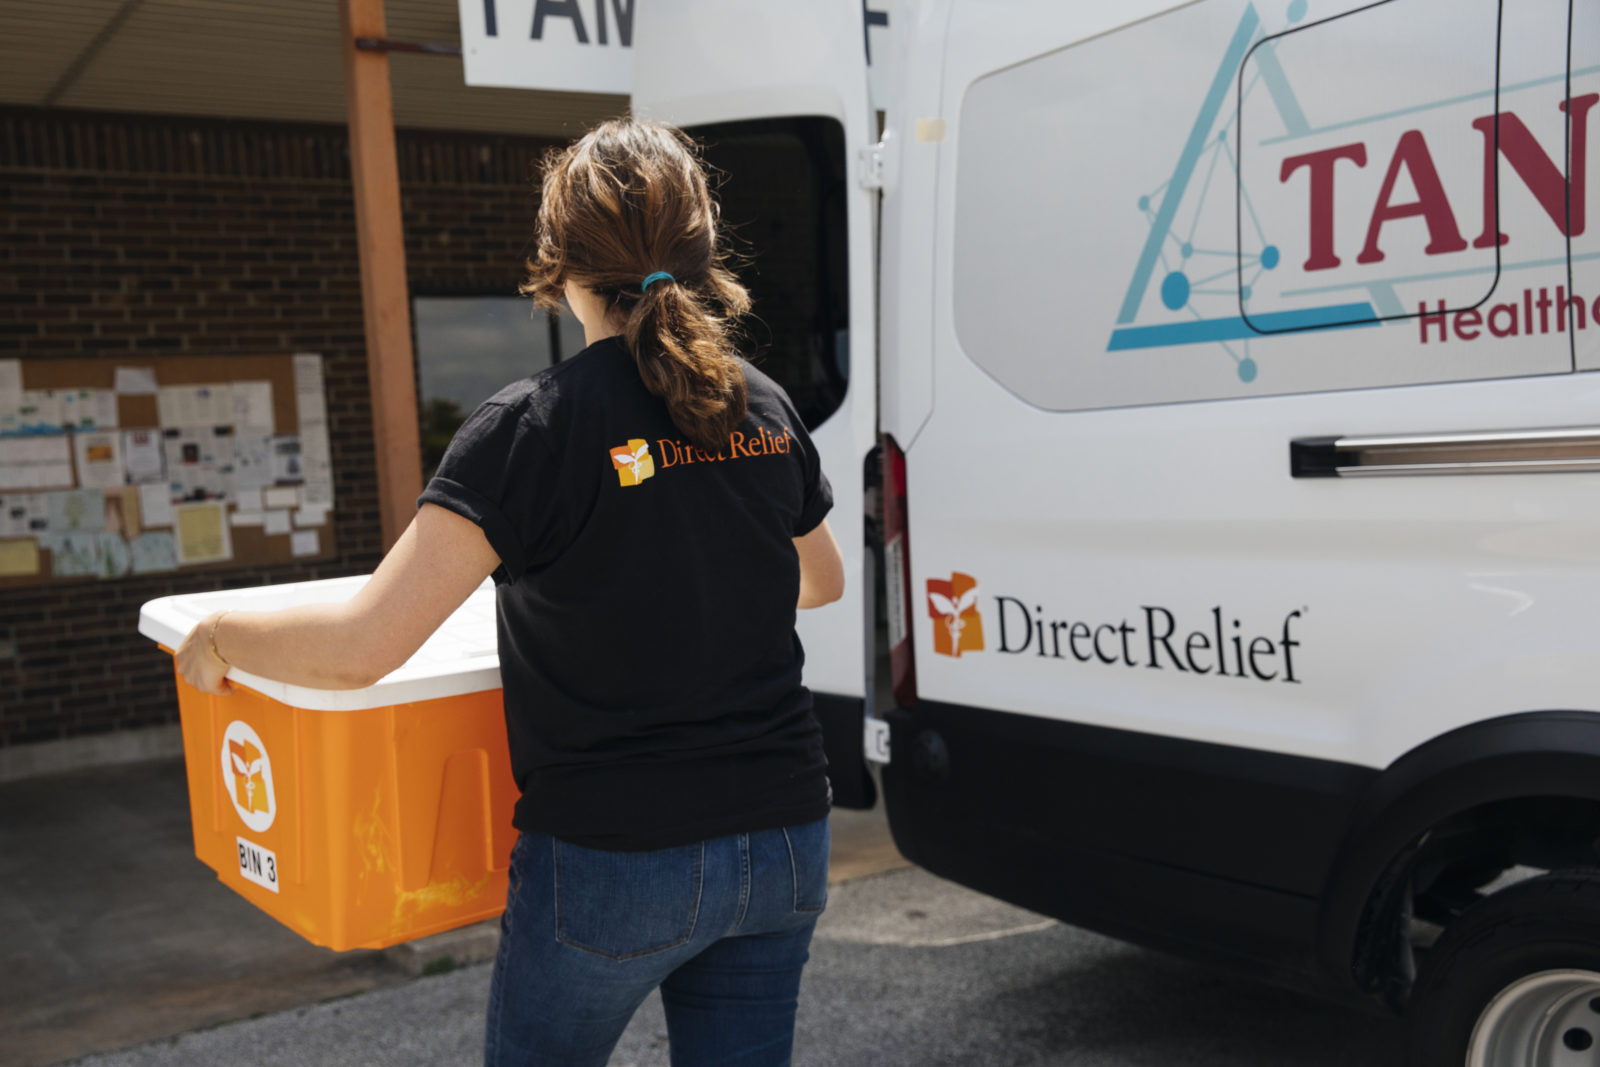 Direct Relief staff load medical supplies into a mobile clinic in Raywood, TX. After Hurricane Harvey, Direct Relief purchased the mobile clinic transport van for TAN Healthcare in Beaumont, which was seriously impacted by the hurricane. The facility has been able to expand beyond clinic walls to reach patients in rural areas. (Photo by Donnie Hedden for Direct Relief)